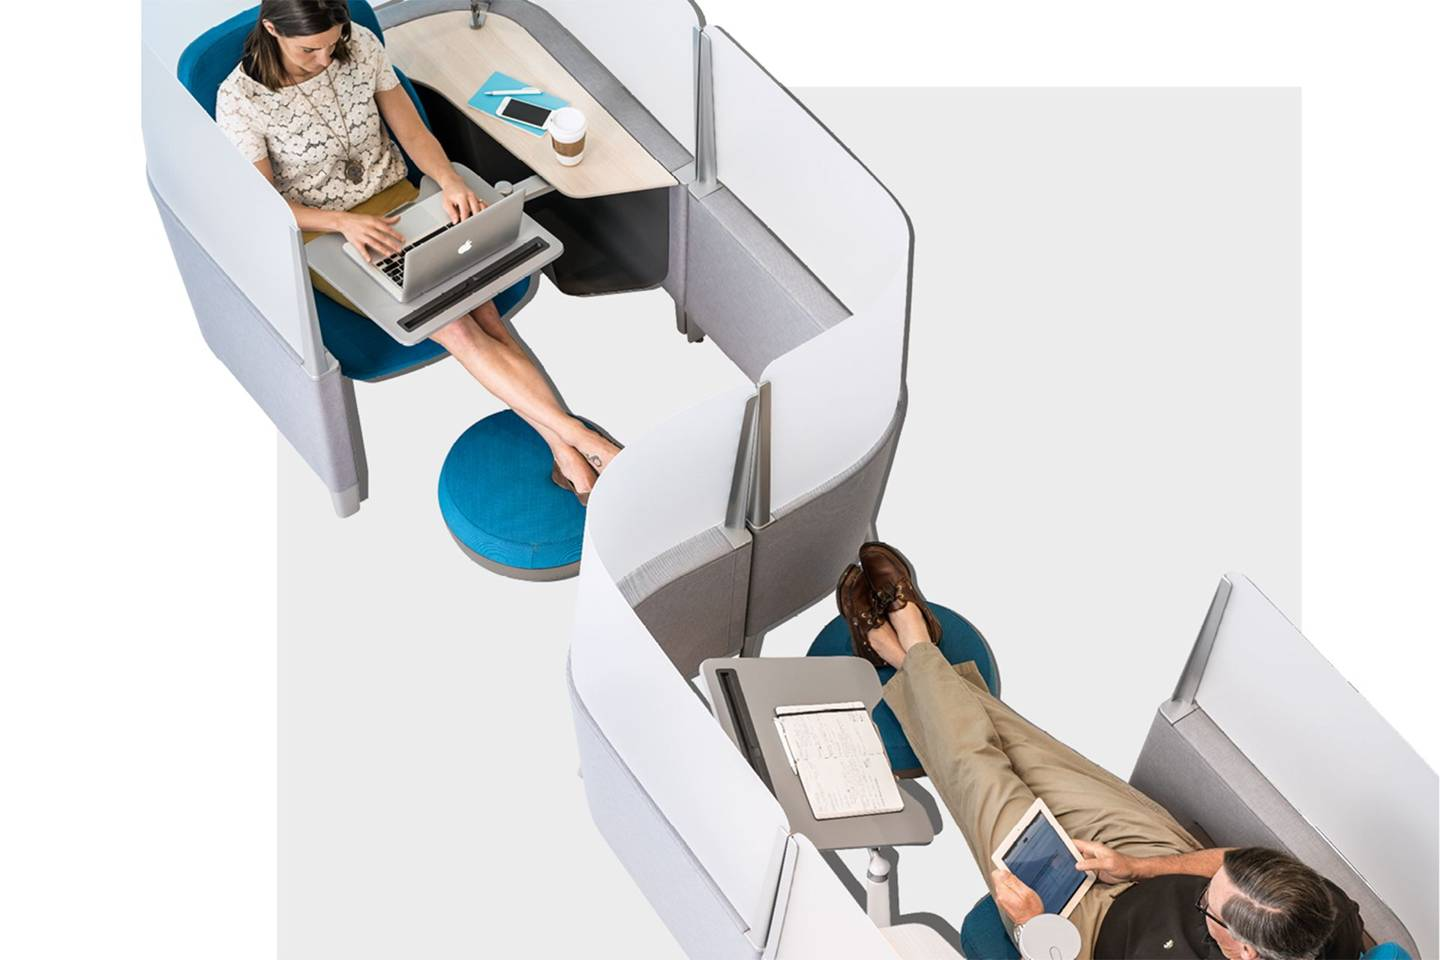 Behind The Scenes At Steelcase The Company Designing The Future Of Office Furniture Wired Uk